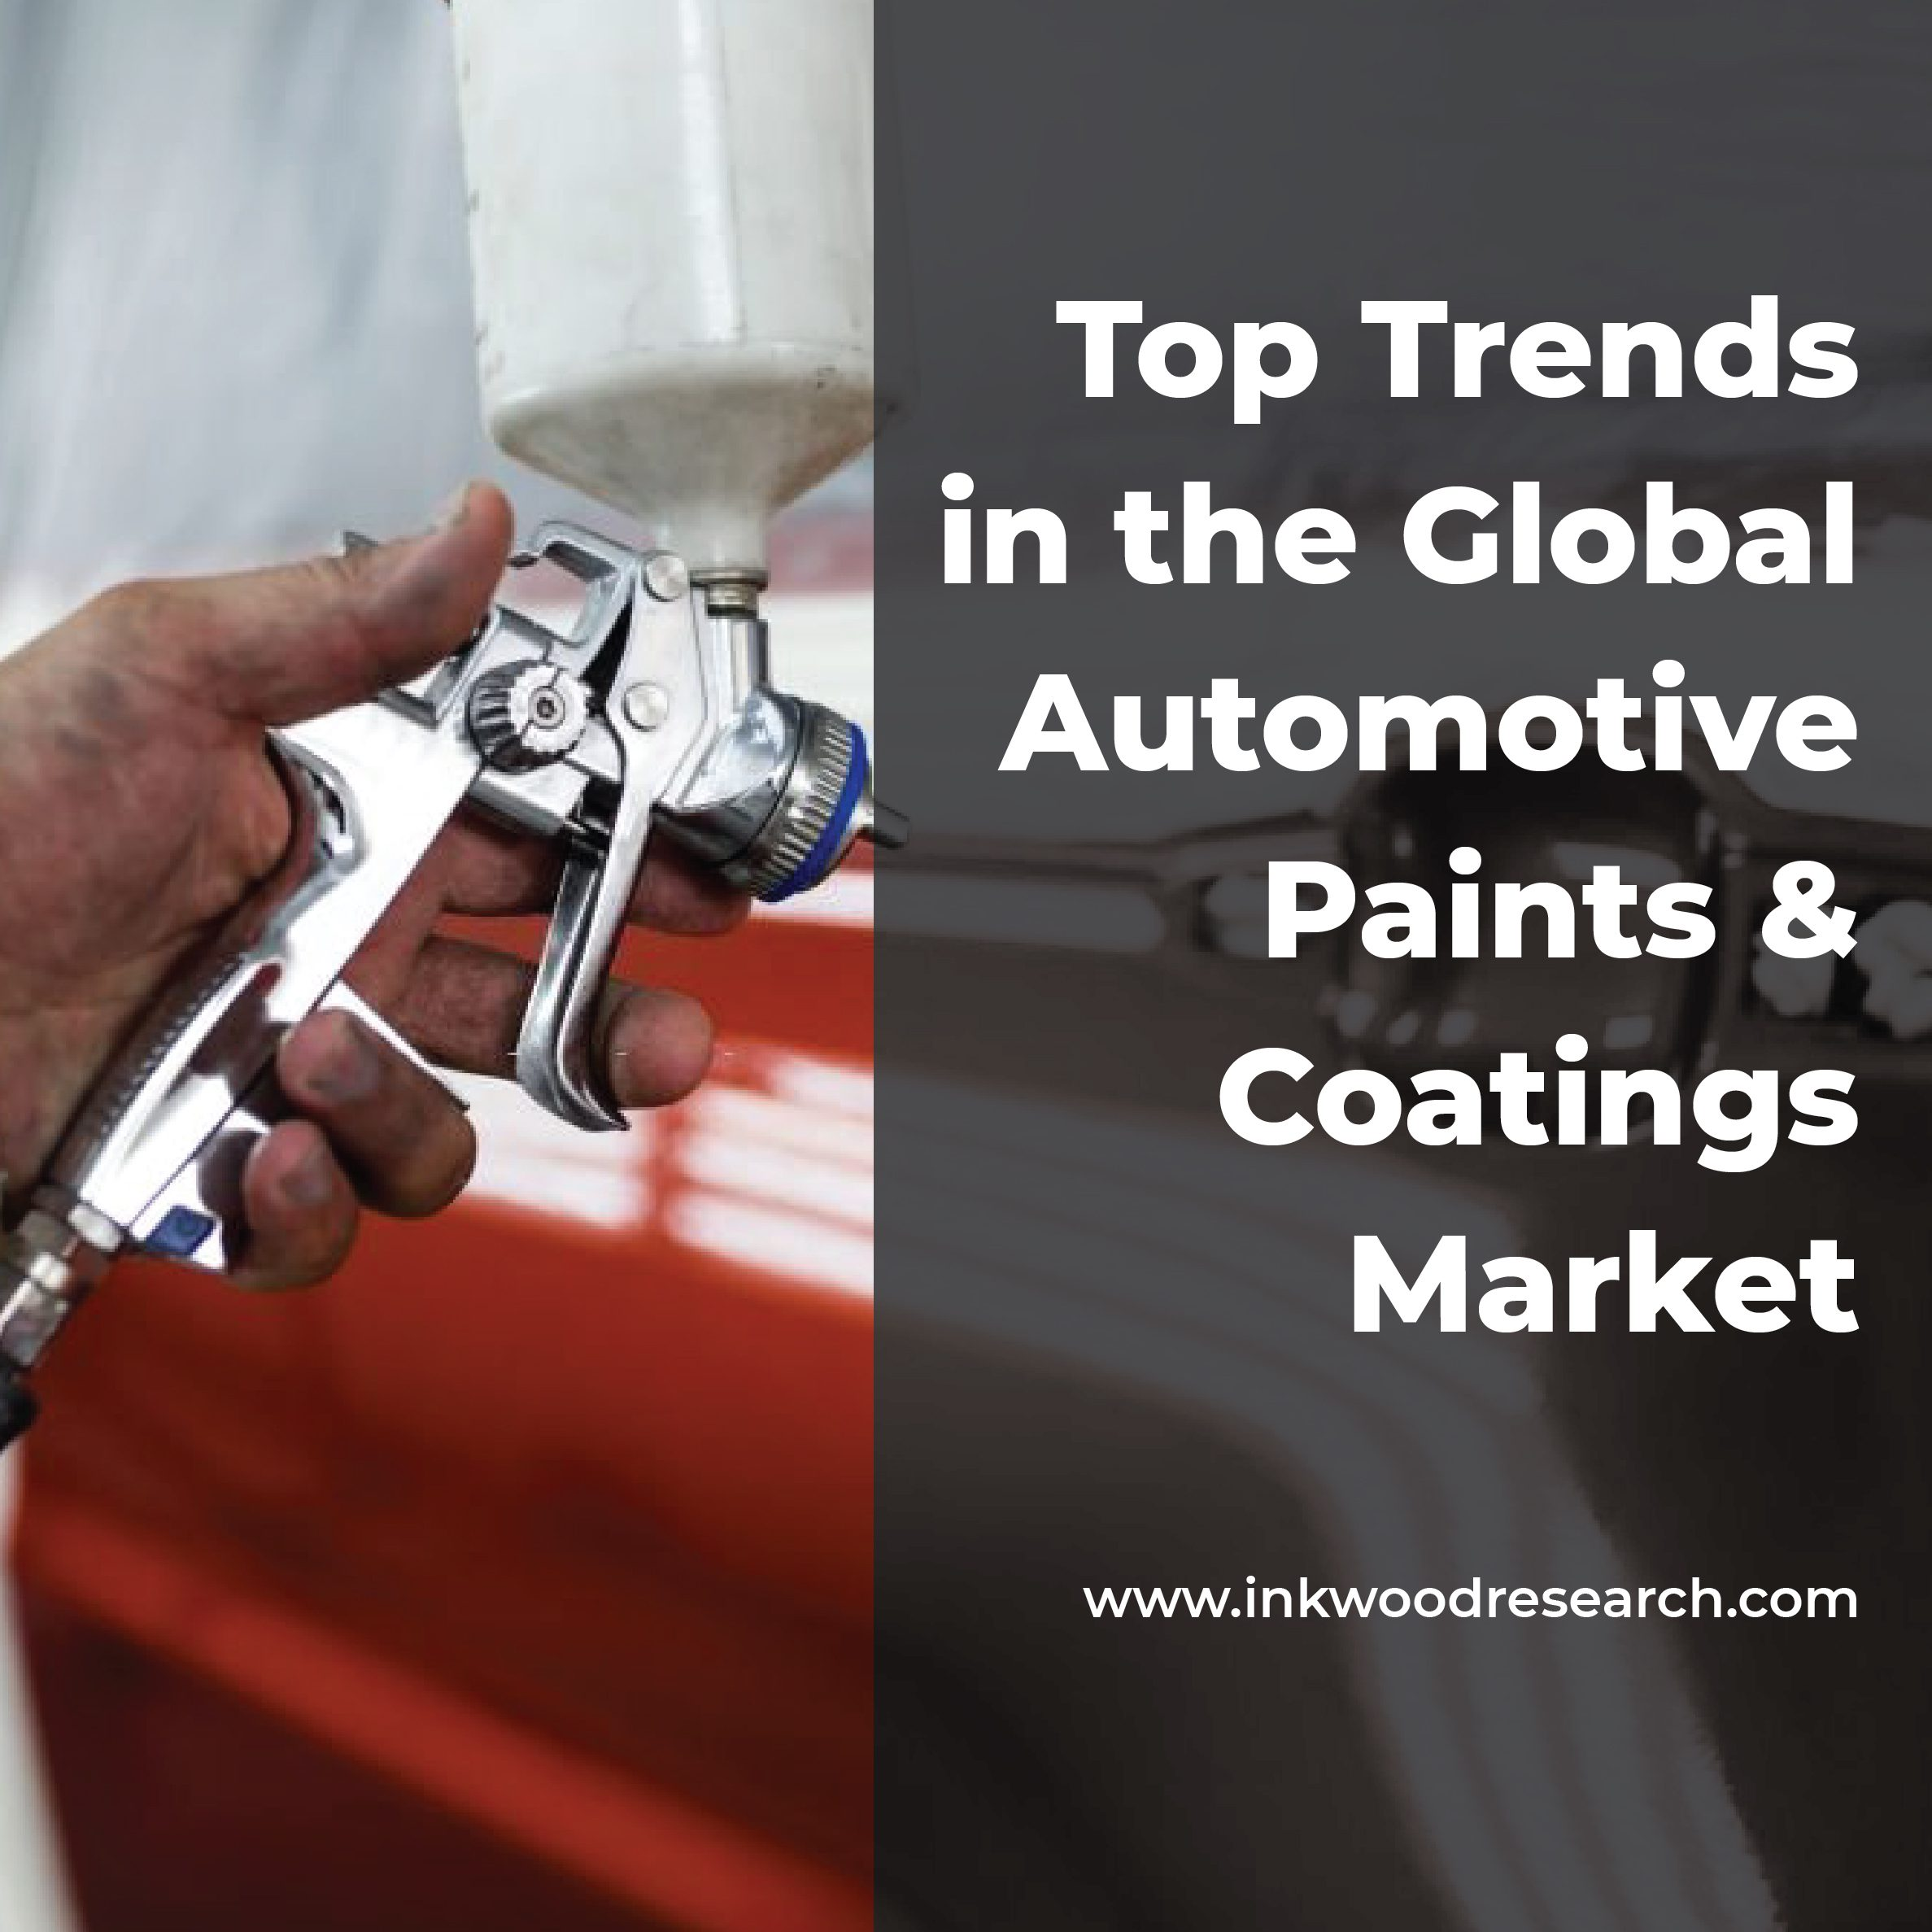 Top Trends in the Global Automotive Paints & Coatings Market